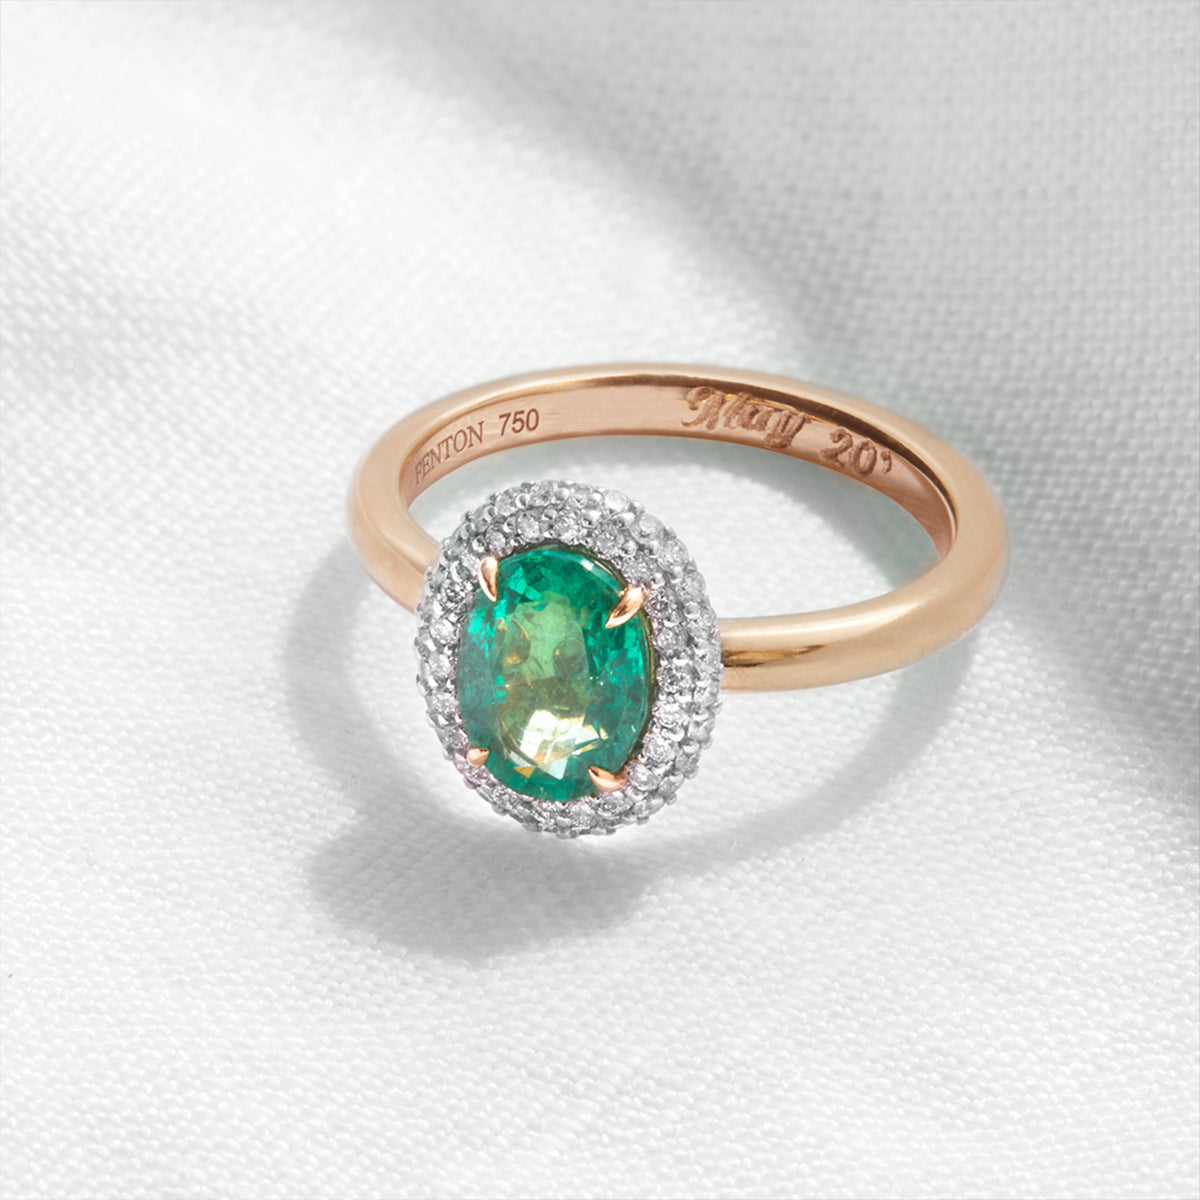 Oval Cut Emerald Vintage Engagement Ring from Fenton in 18k rose gold